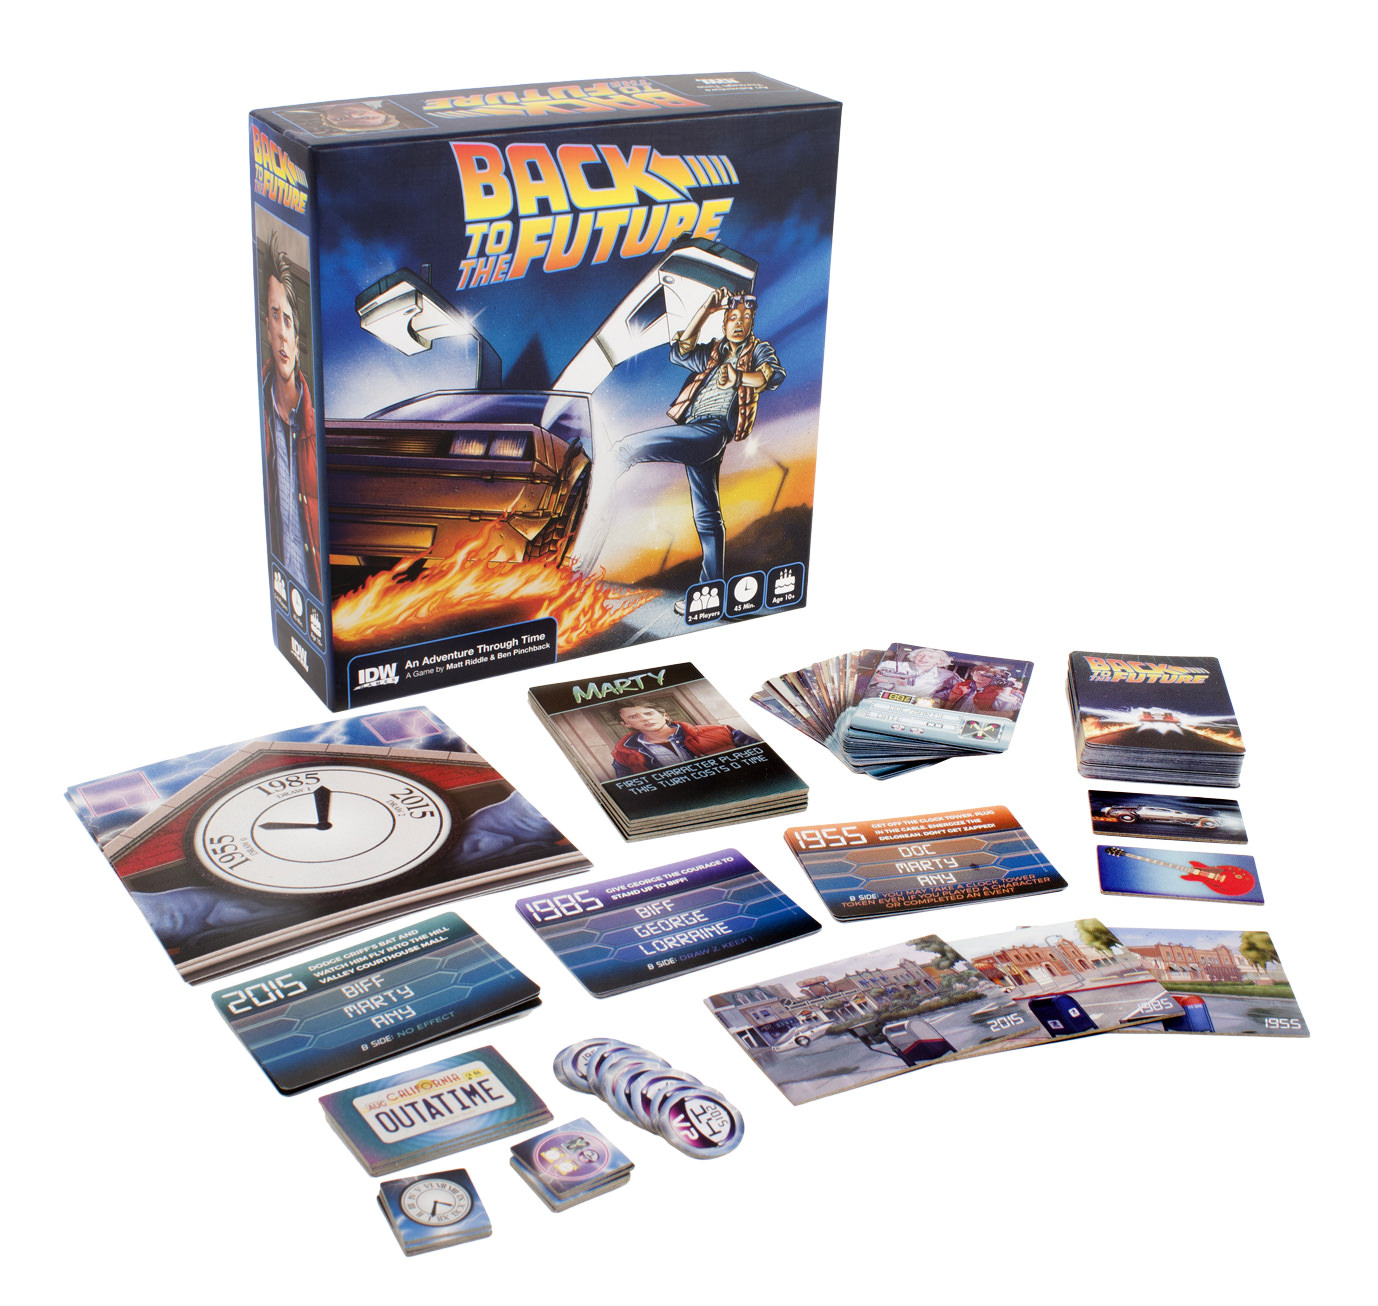 Back To The Future An Adventure Through Time Idw Games